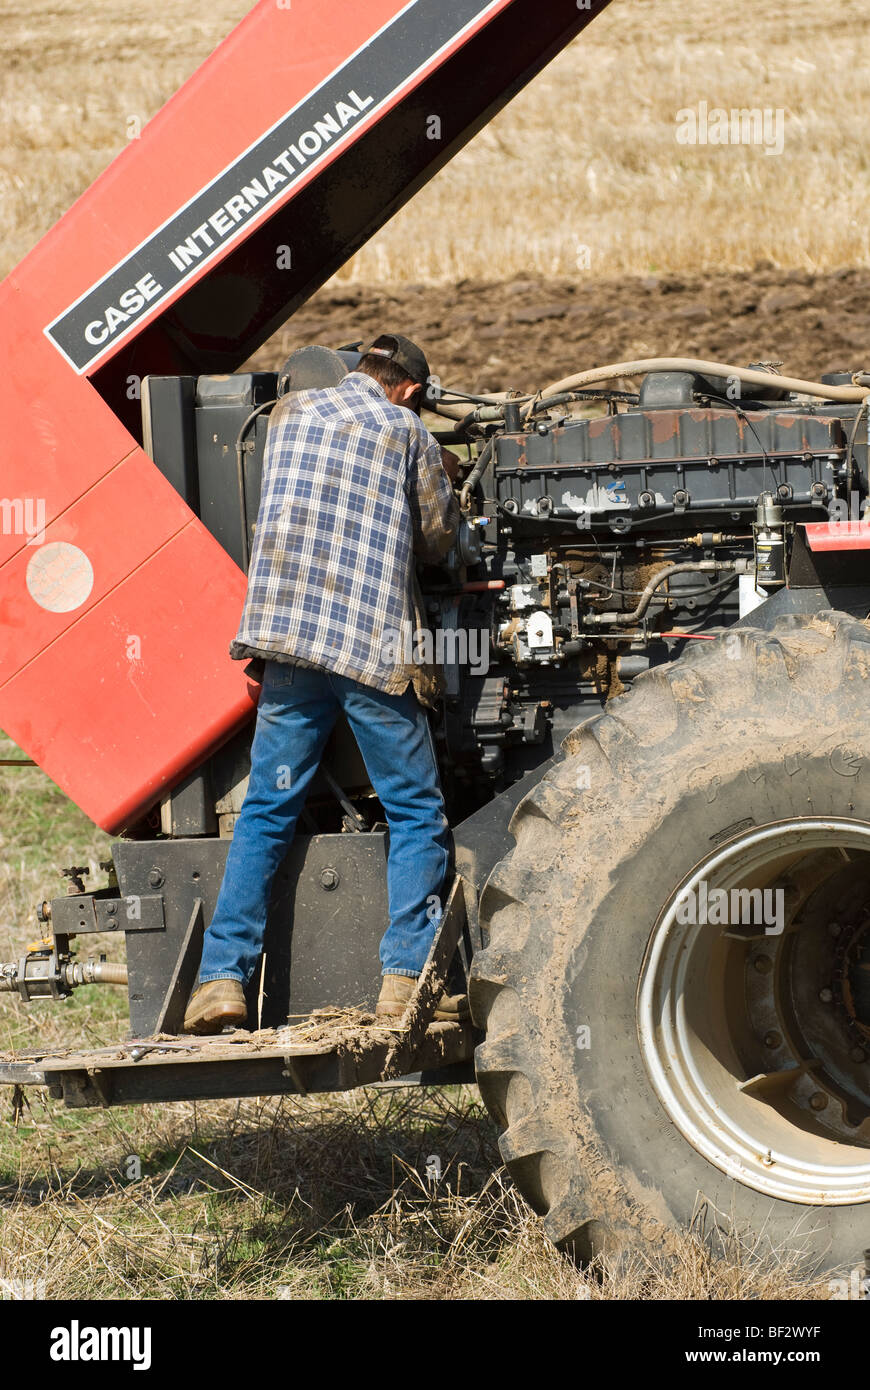 A farmer performs maintenance on a tractor in the field during planting season / near Pullman, Palouse Region, Washington, - Stock Image